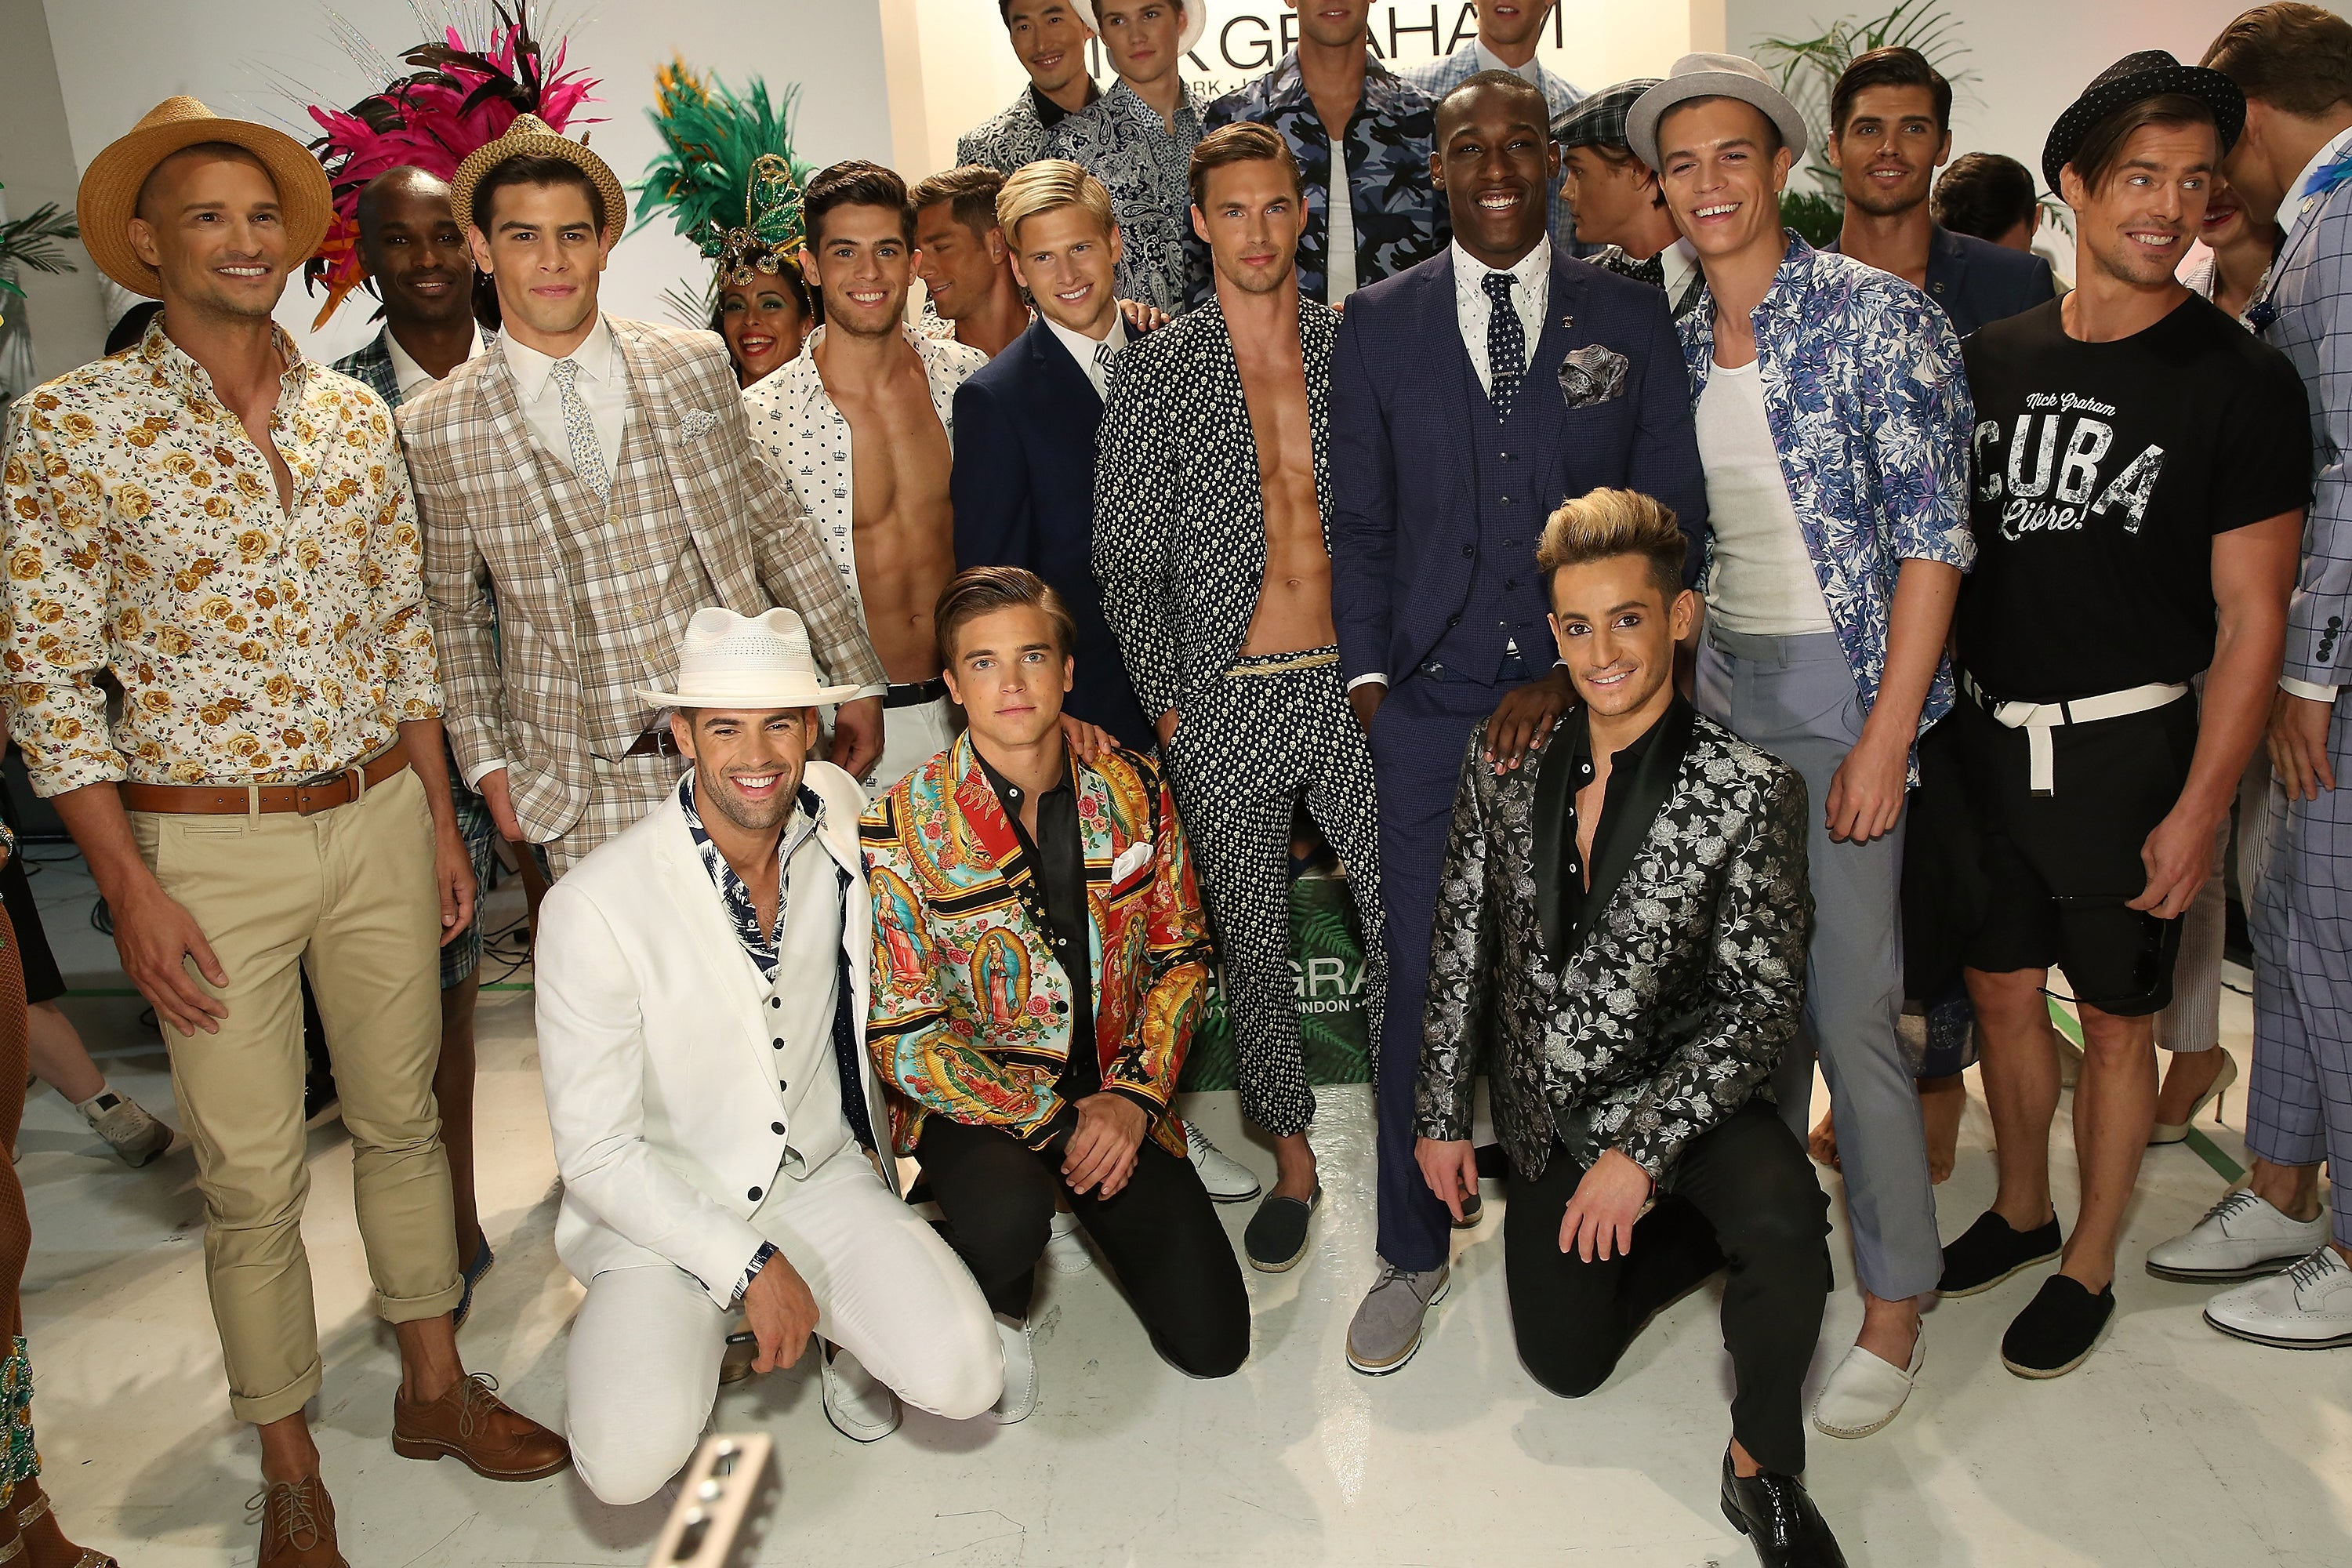 male models of nick graham spring summer 2017 collection